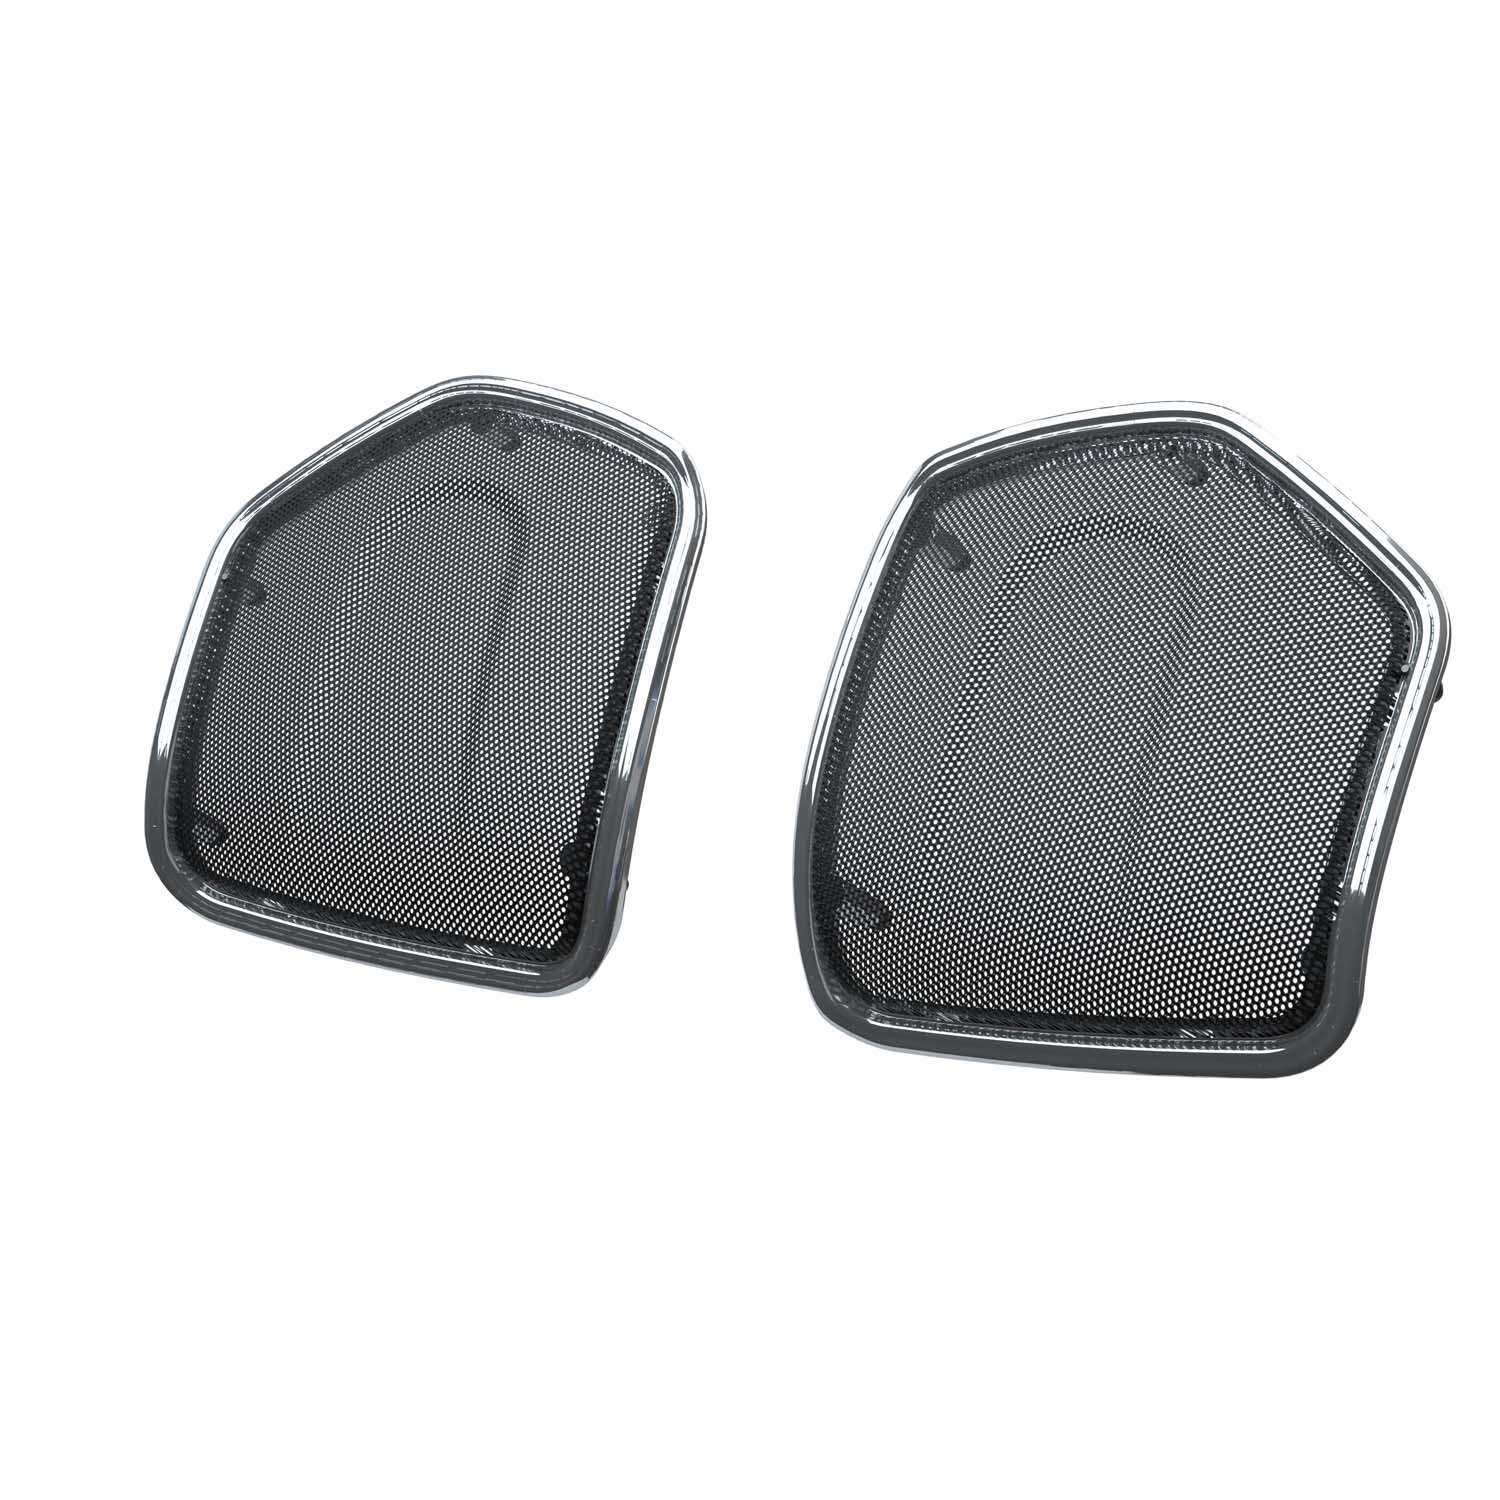 PowerBand Audio Saddlebag Lid Speaker Bezels in Chrome, Pair